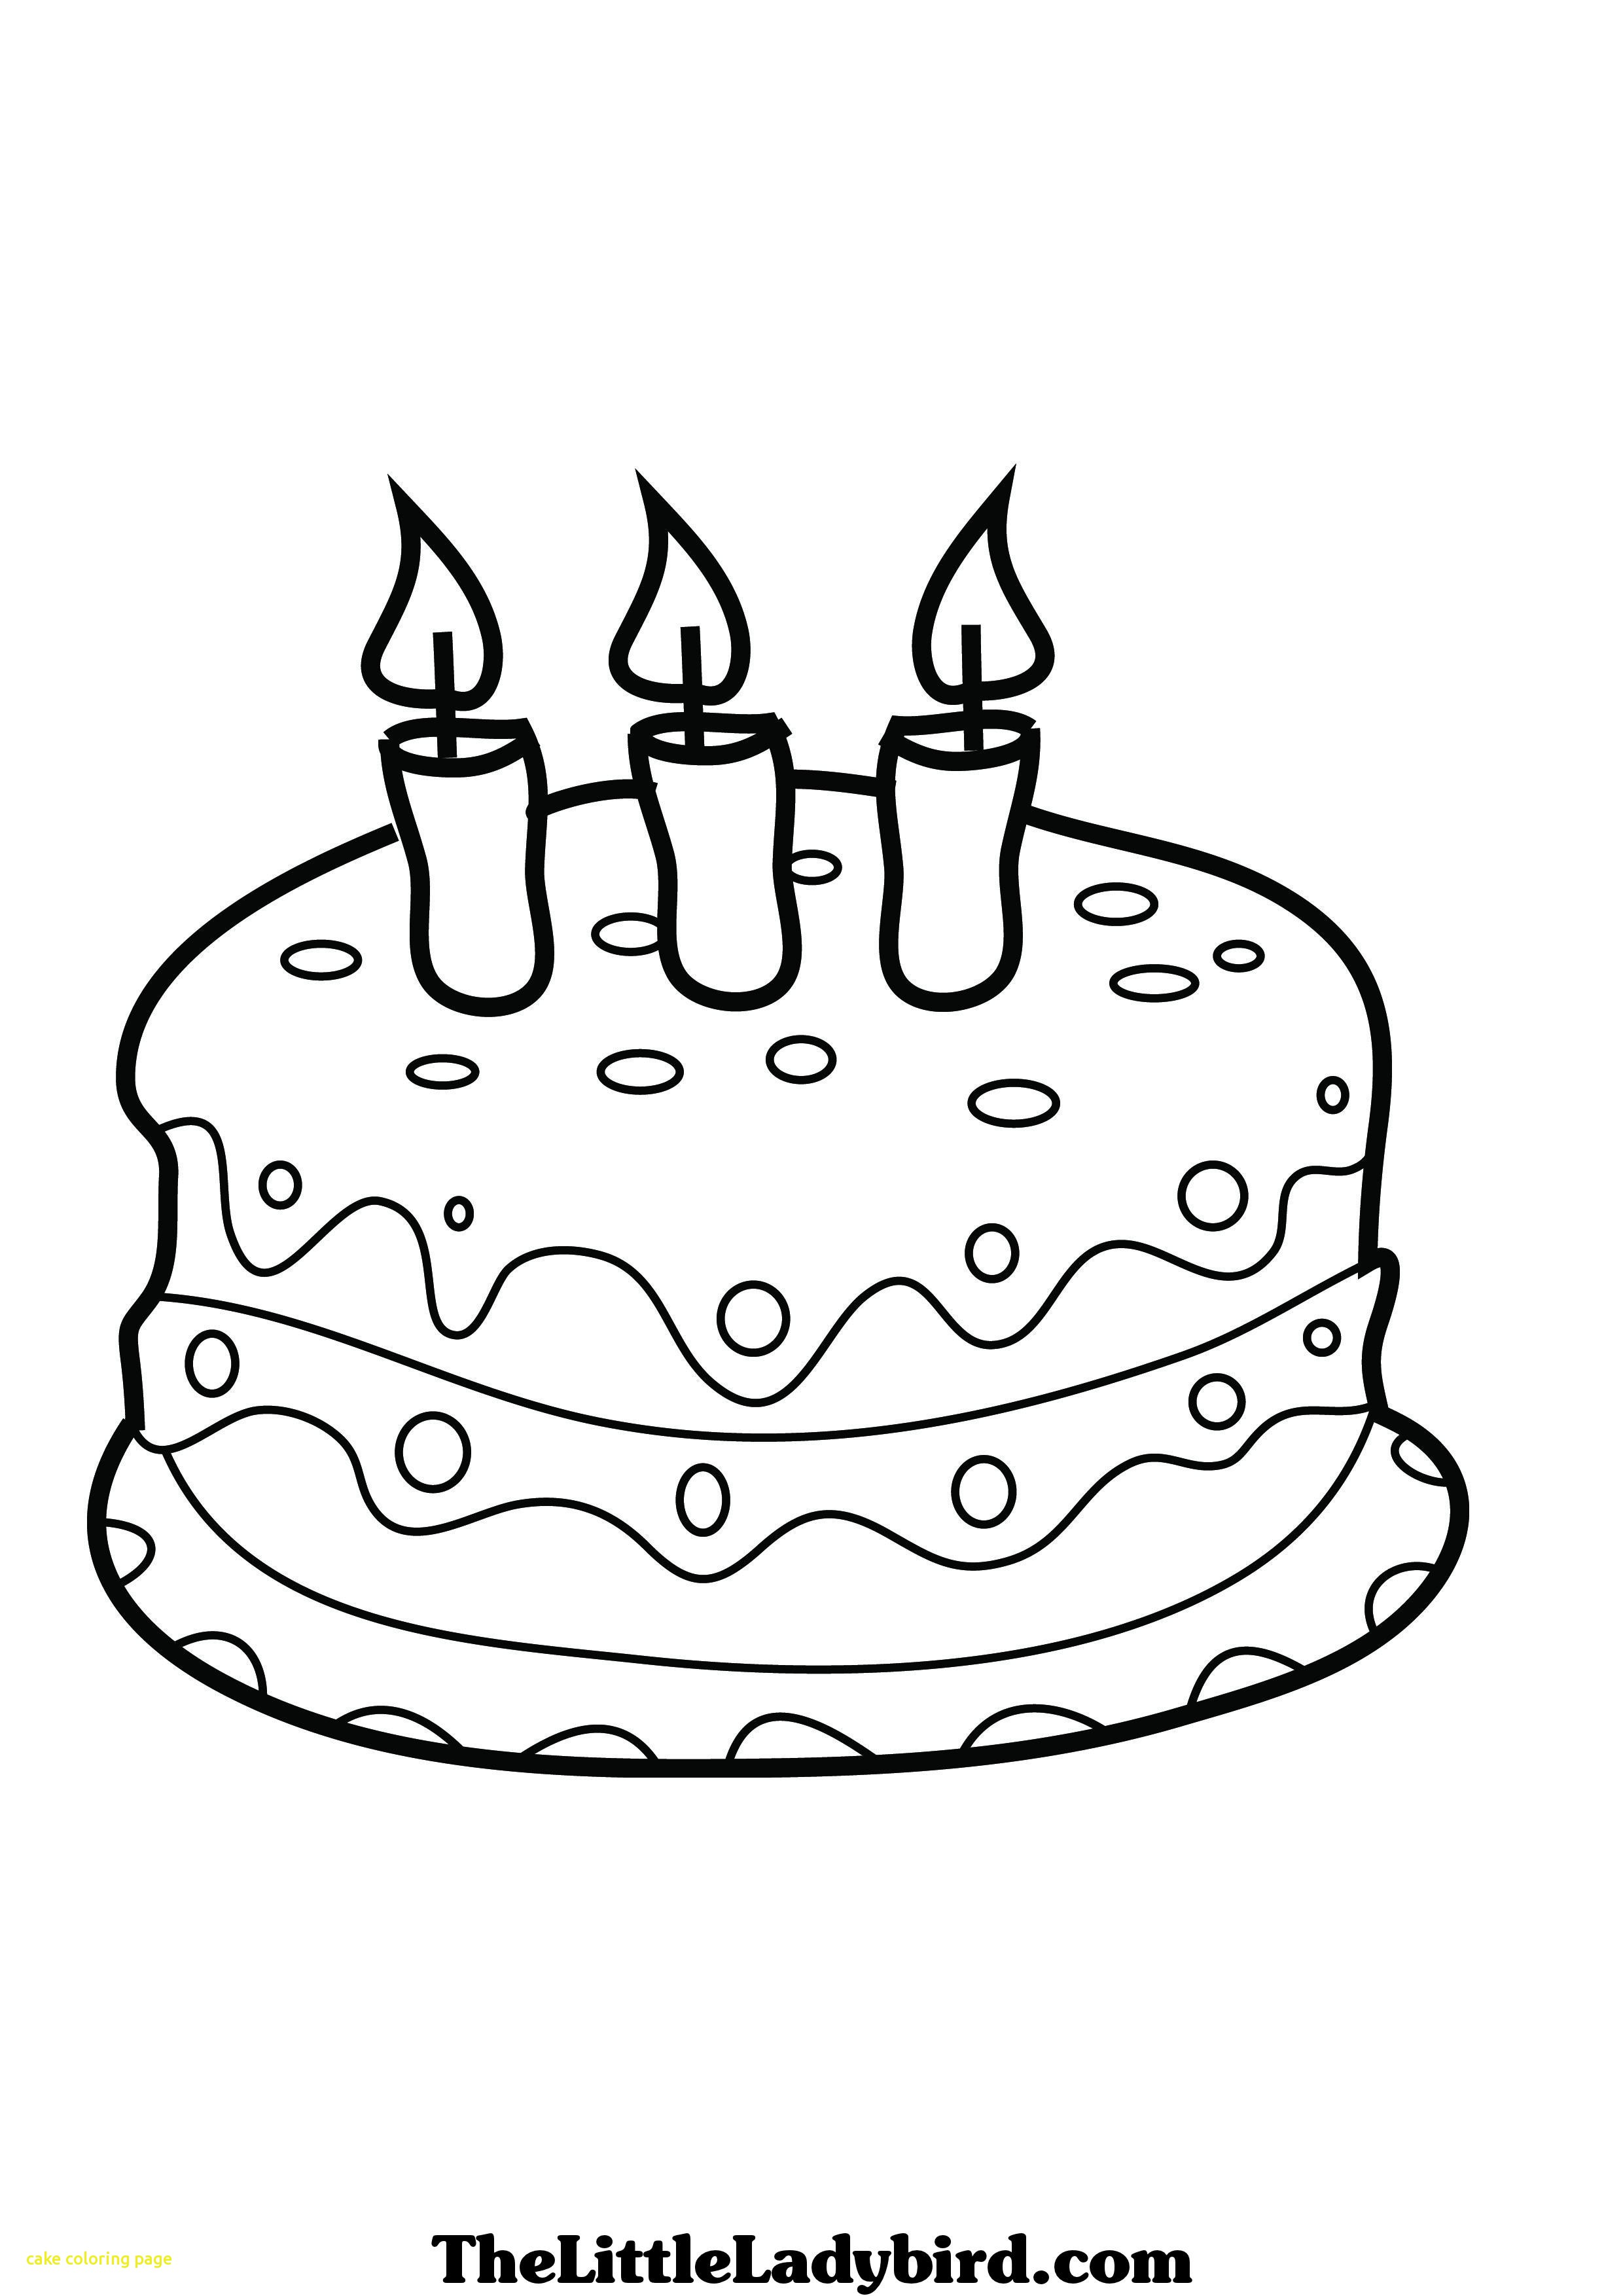 color a birthday cake ; best-of-cake-coloring-page-with-coloring-page-of-a-birthday-cake-coloring-of-coloring-page-of-birthday-cake